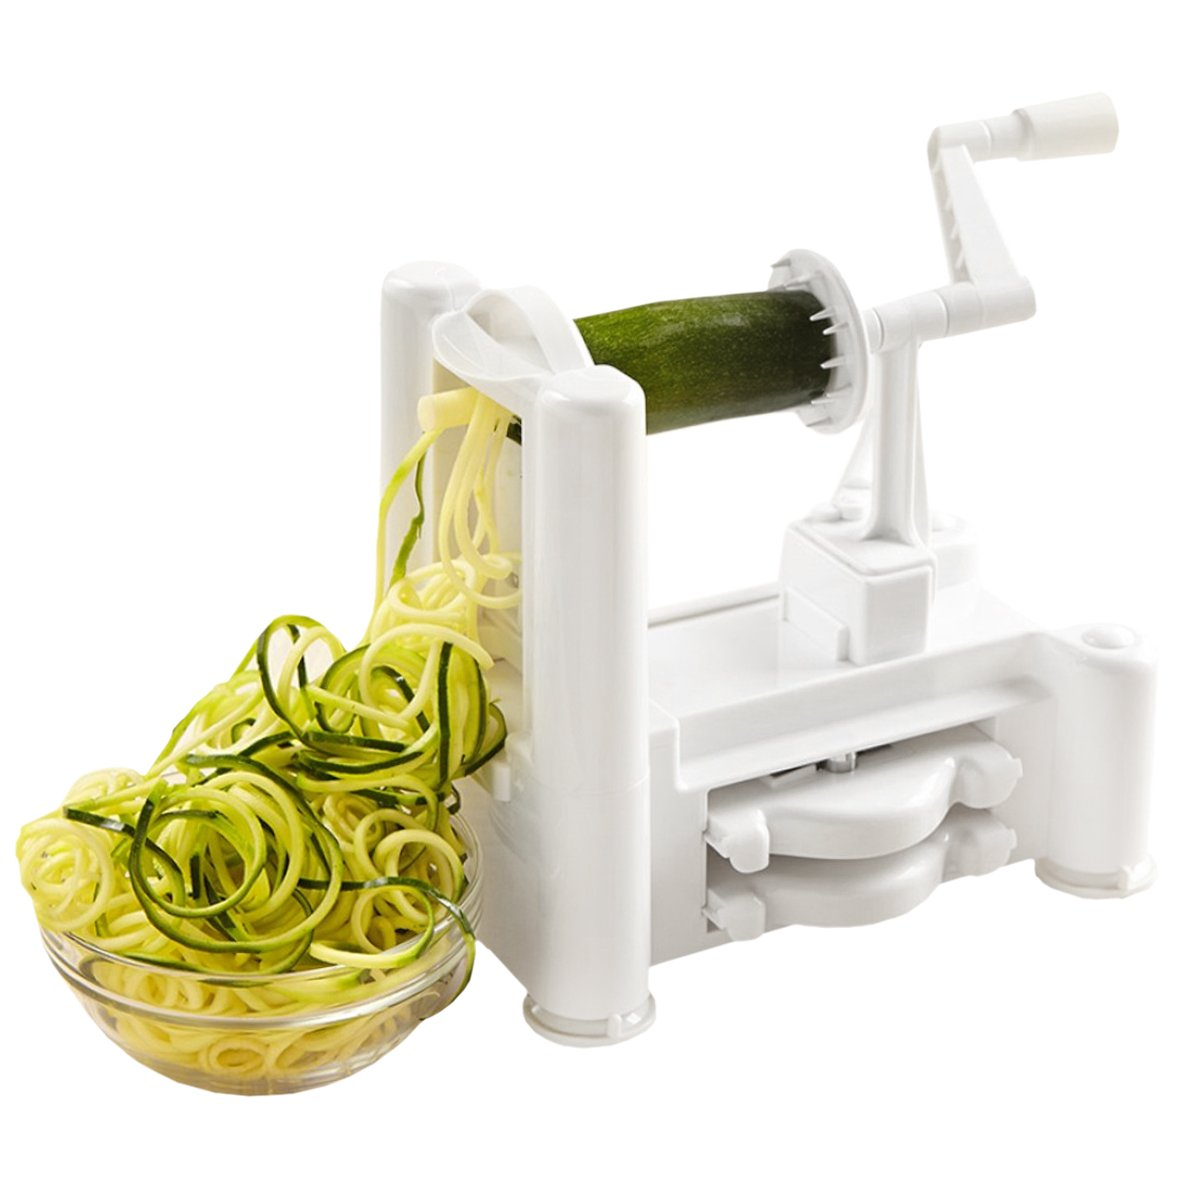 Best Zoodle Maker